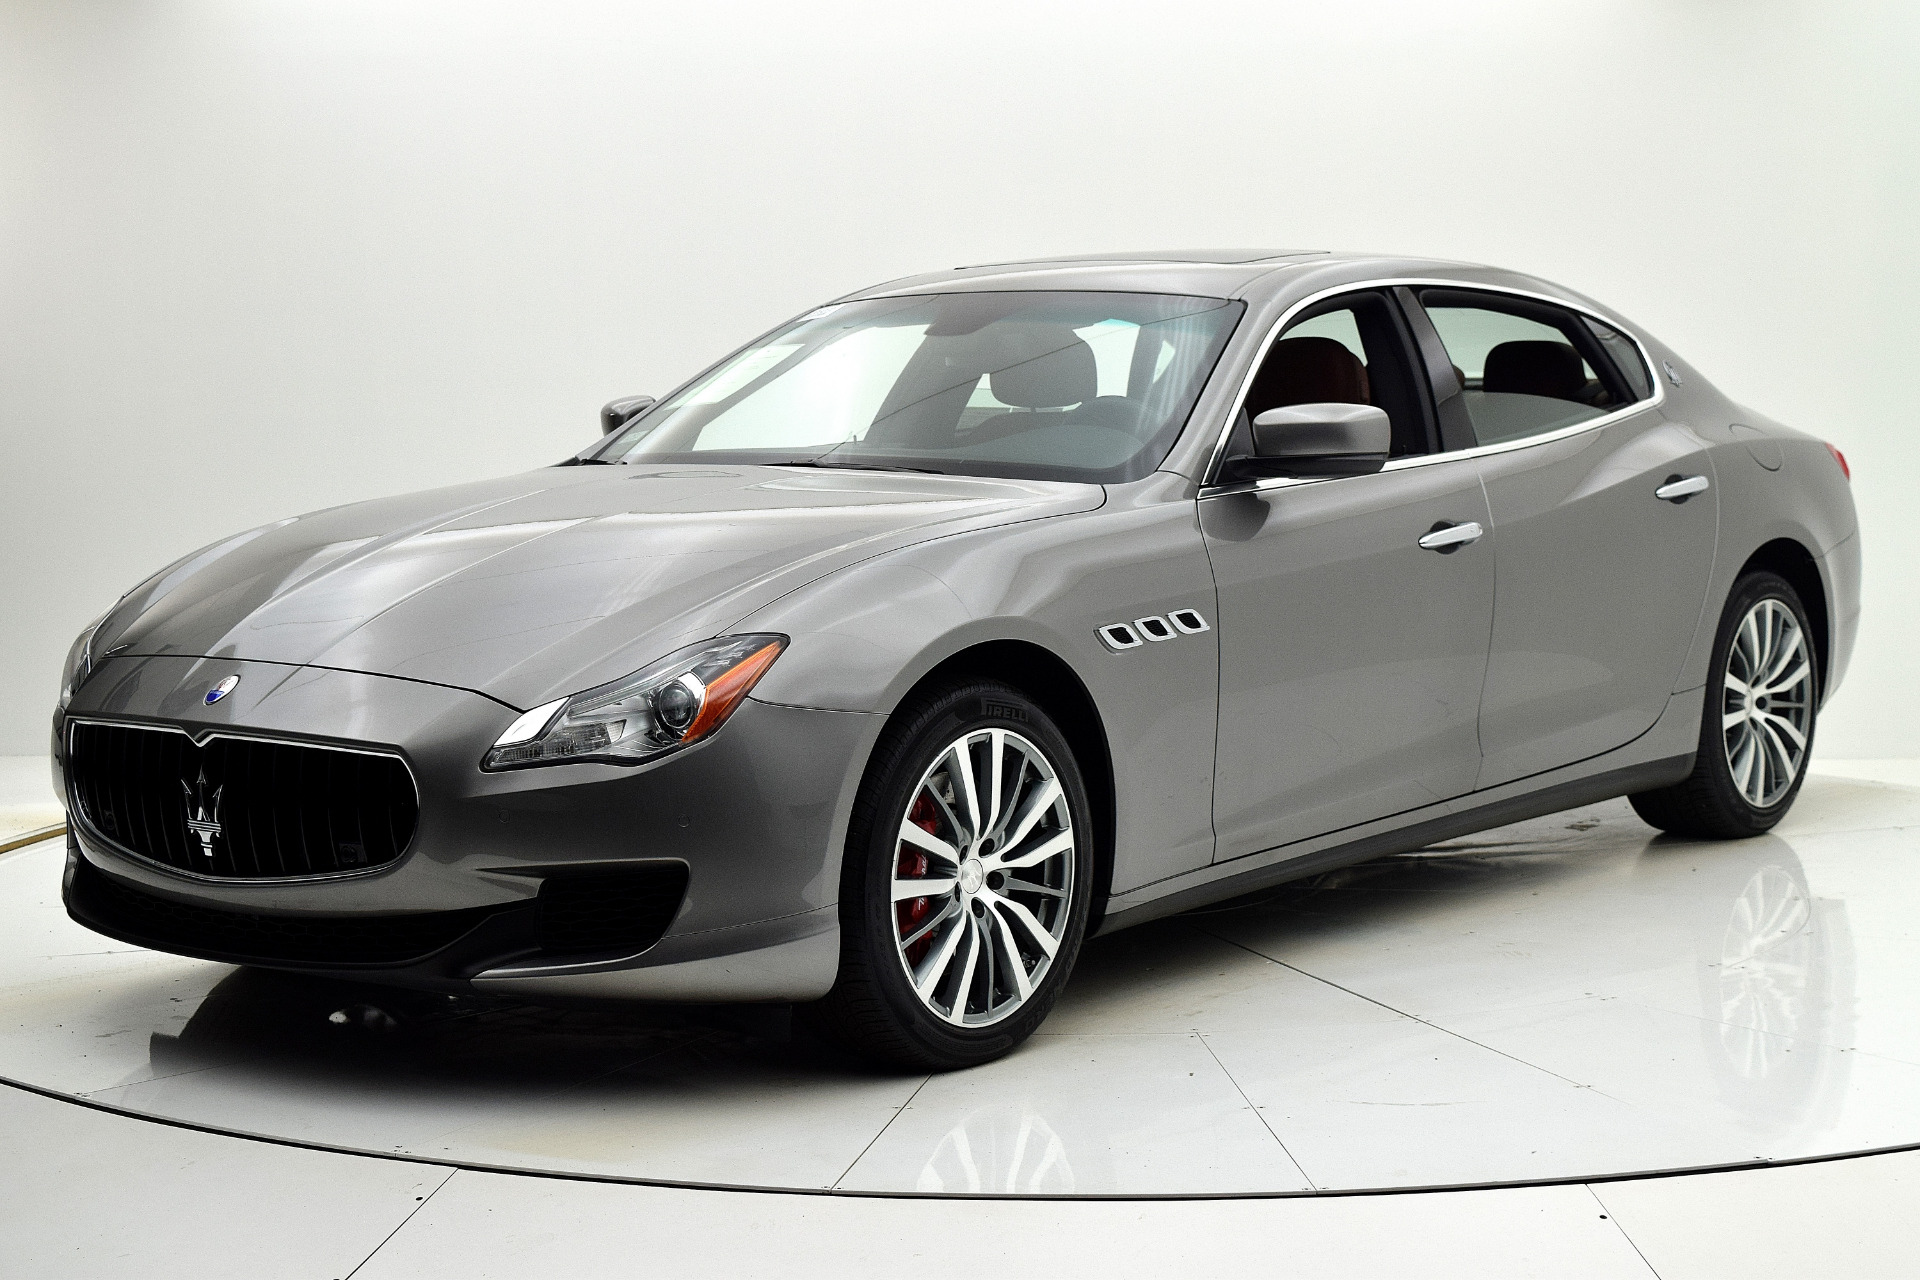 Maserati Quattroporte 2016 For Sale $68880 Stock Number 2032JI